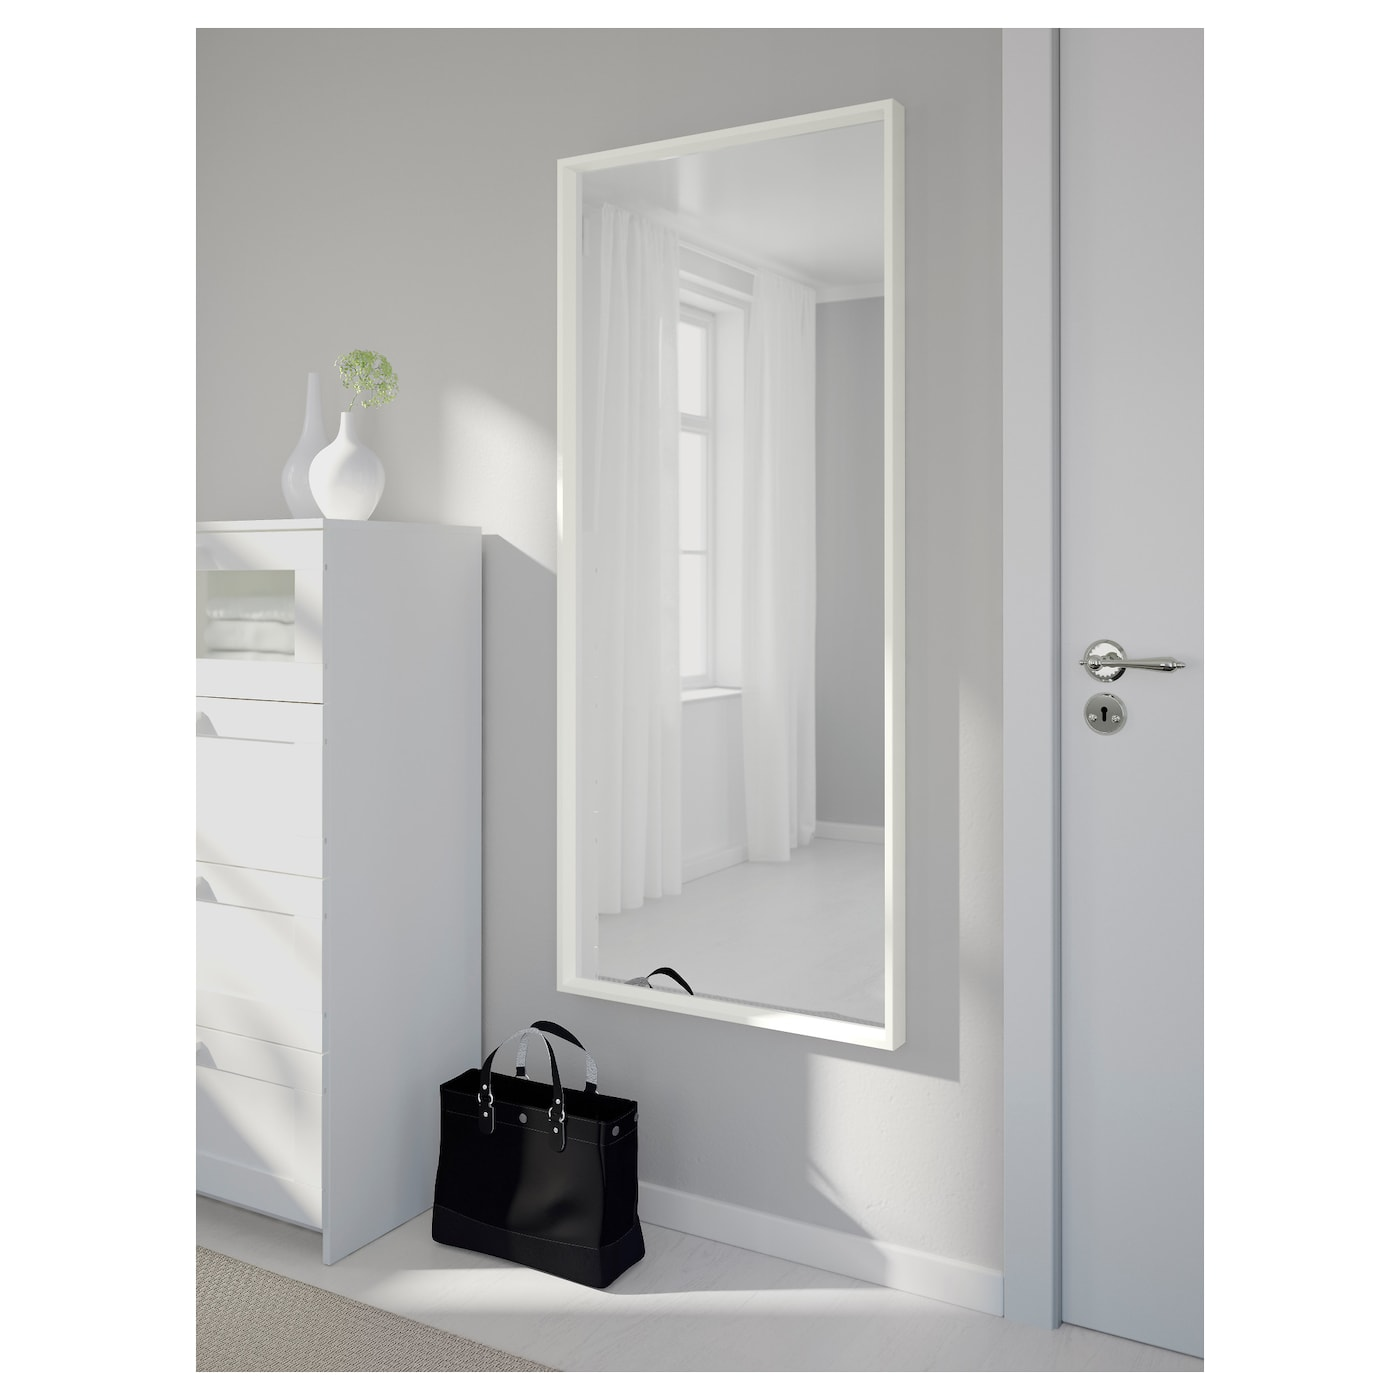 nissedal miroir blanc 65 x 150 cm ikea. Black Bedroom Furniture Sets. Home Design Ideas